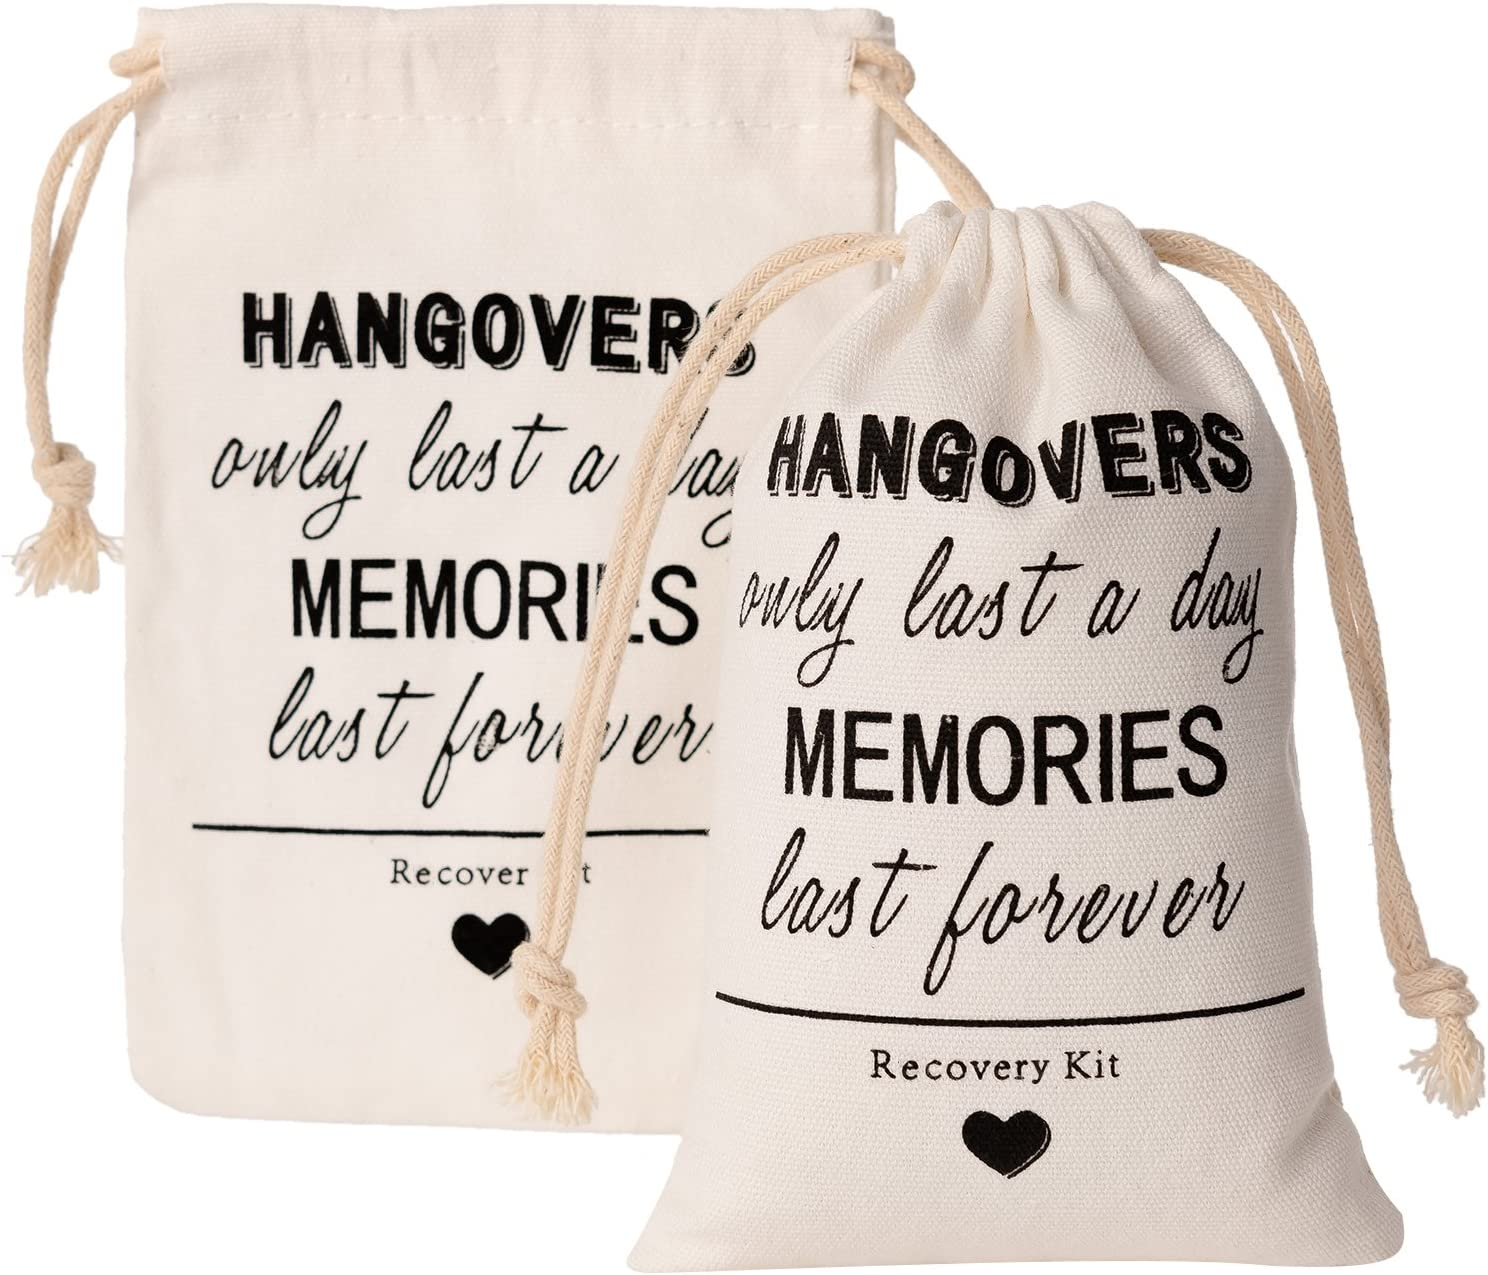 hangover recovery kit bachelorette party personalised hangover recovery kit wedding favors hangovers only last a day hen party favors,